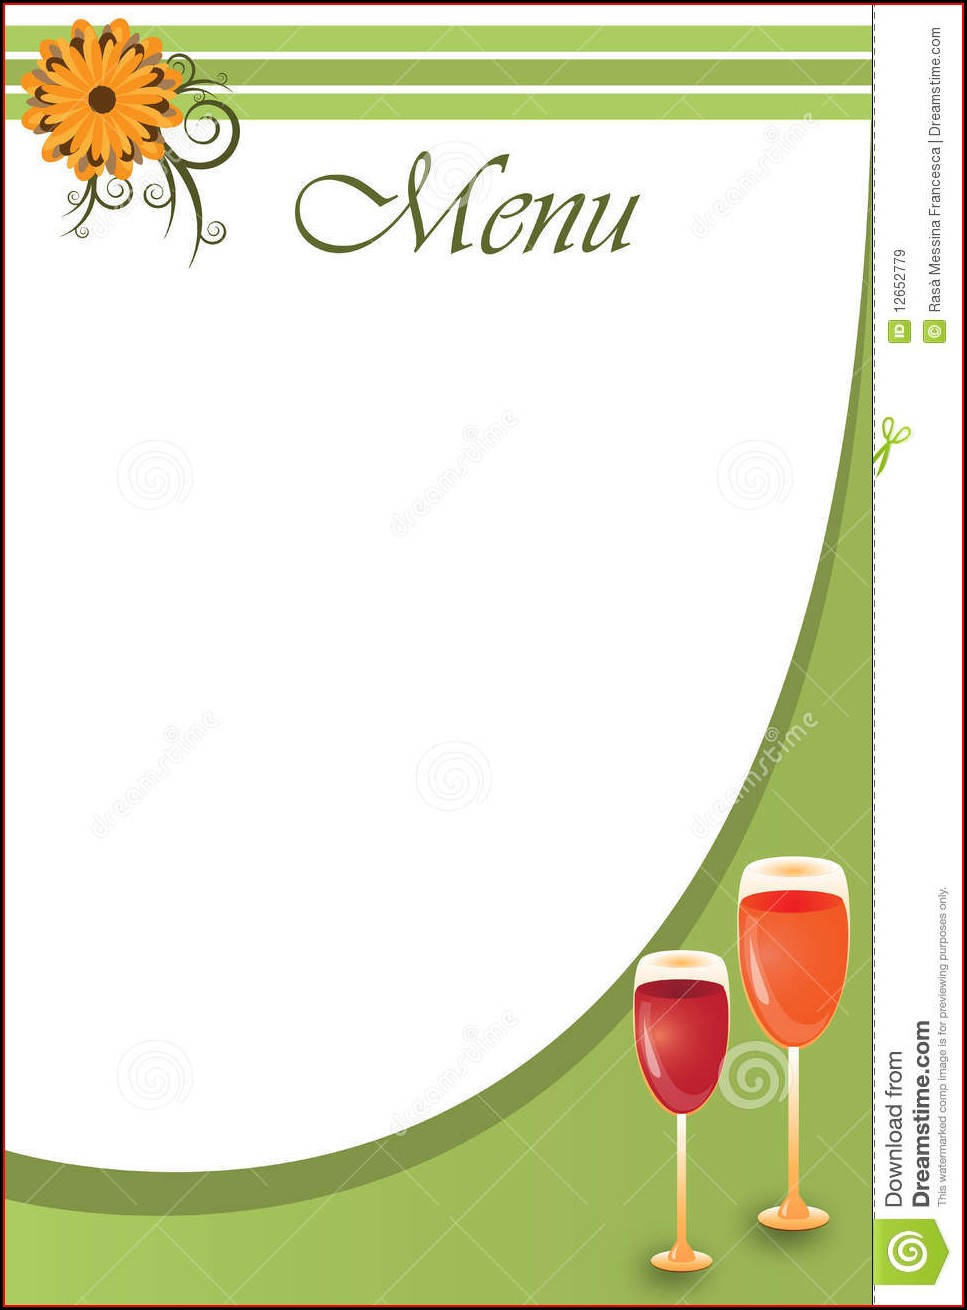 Restaurant Menu Templates Blank Design Menu Card Background